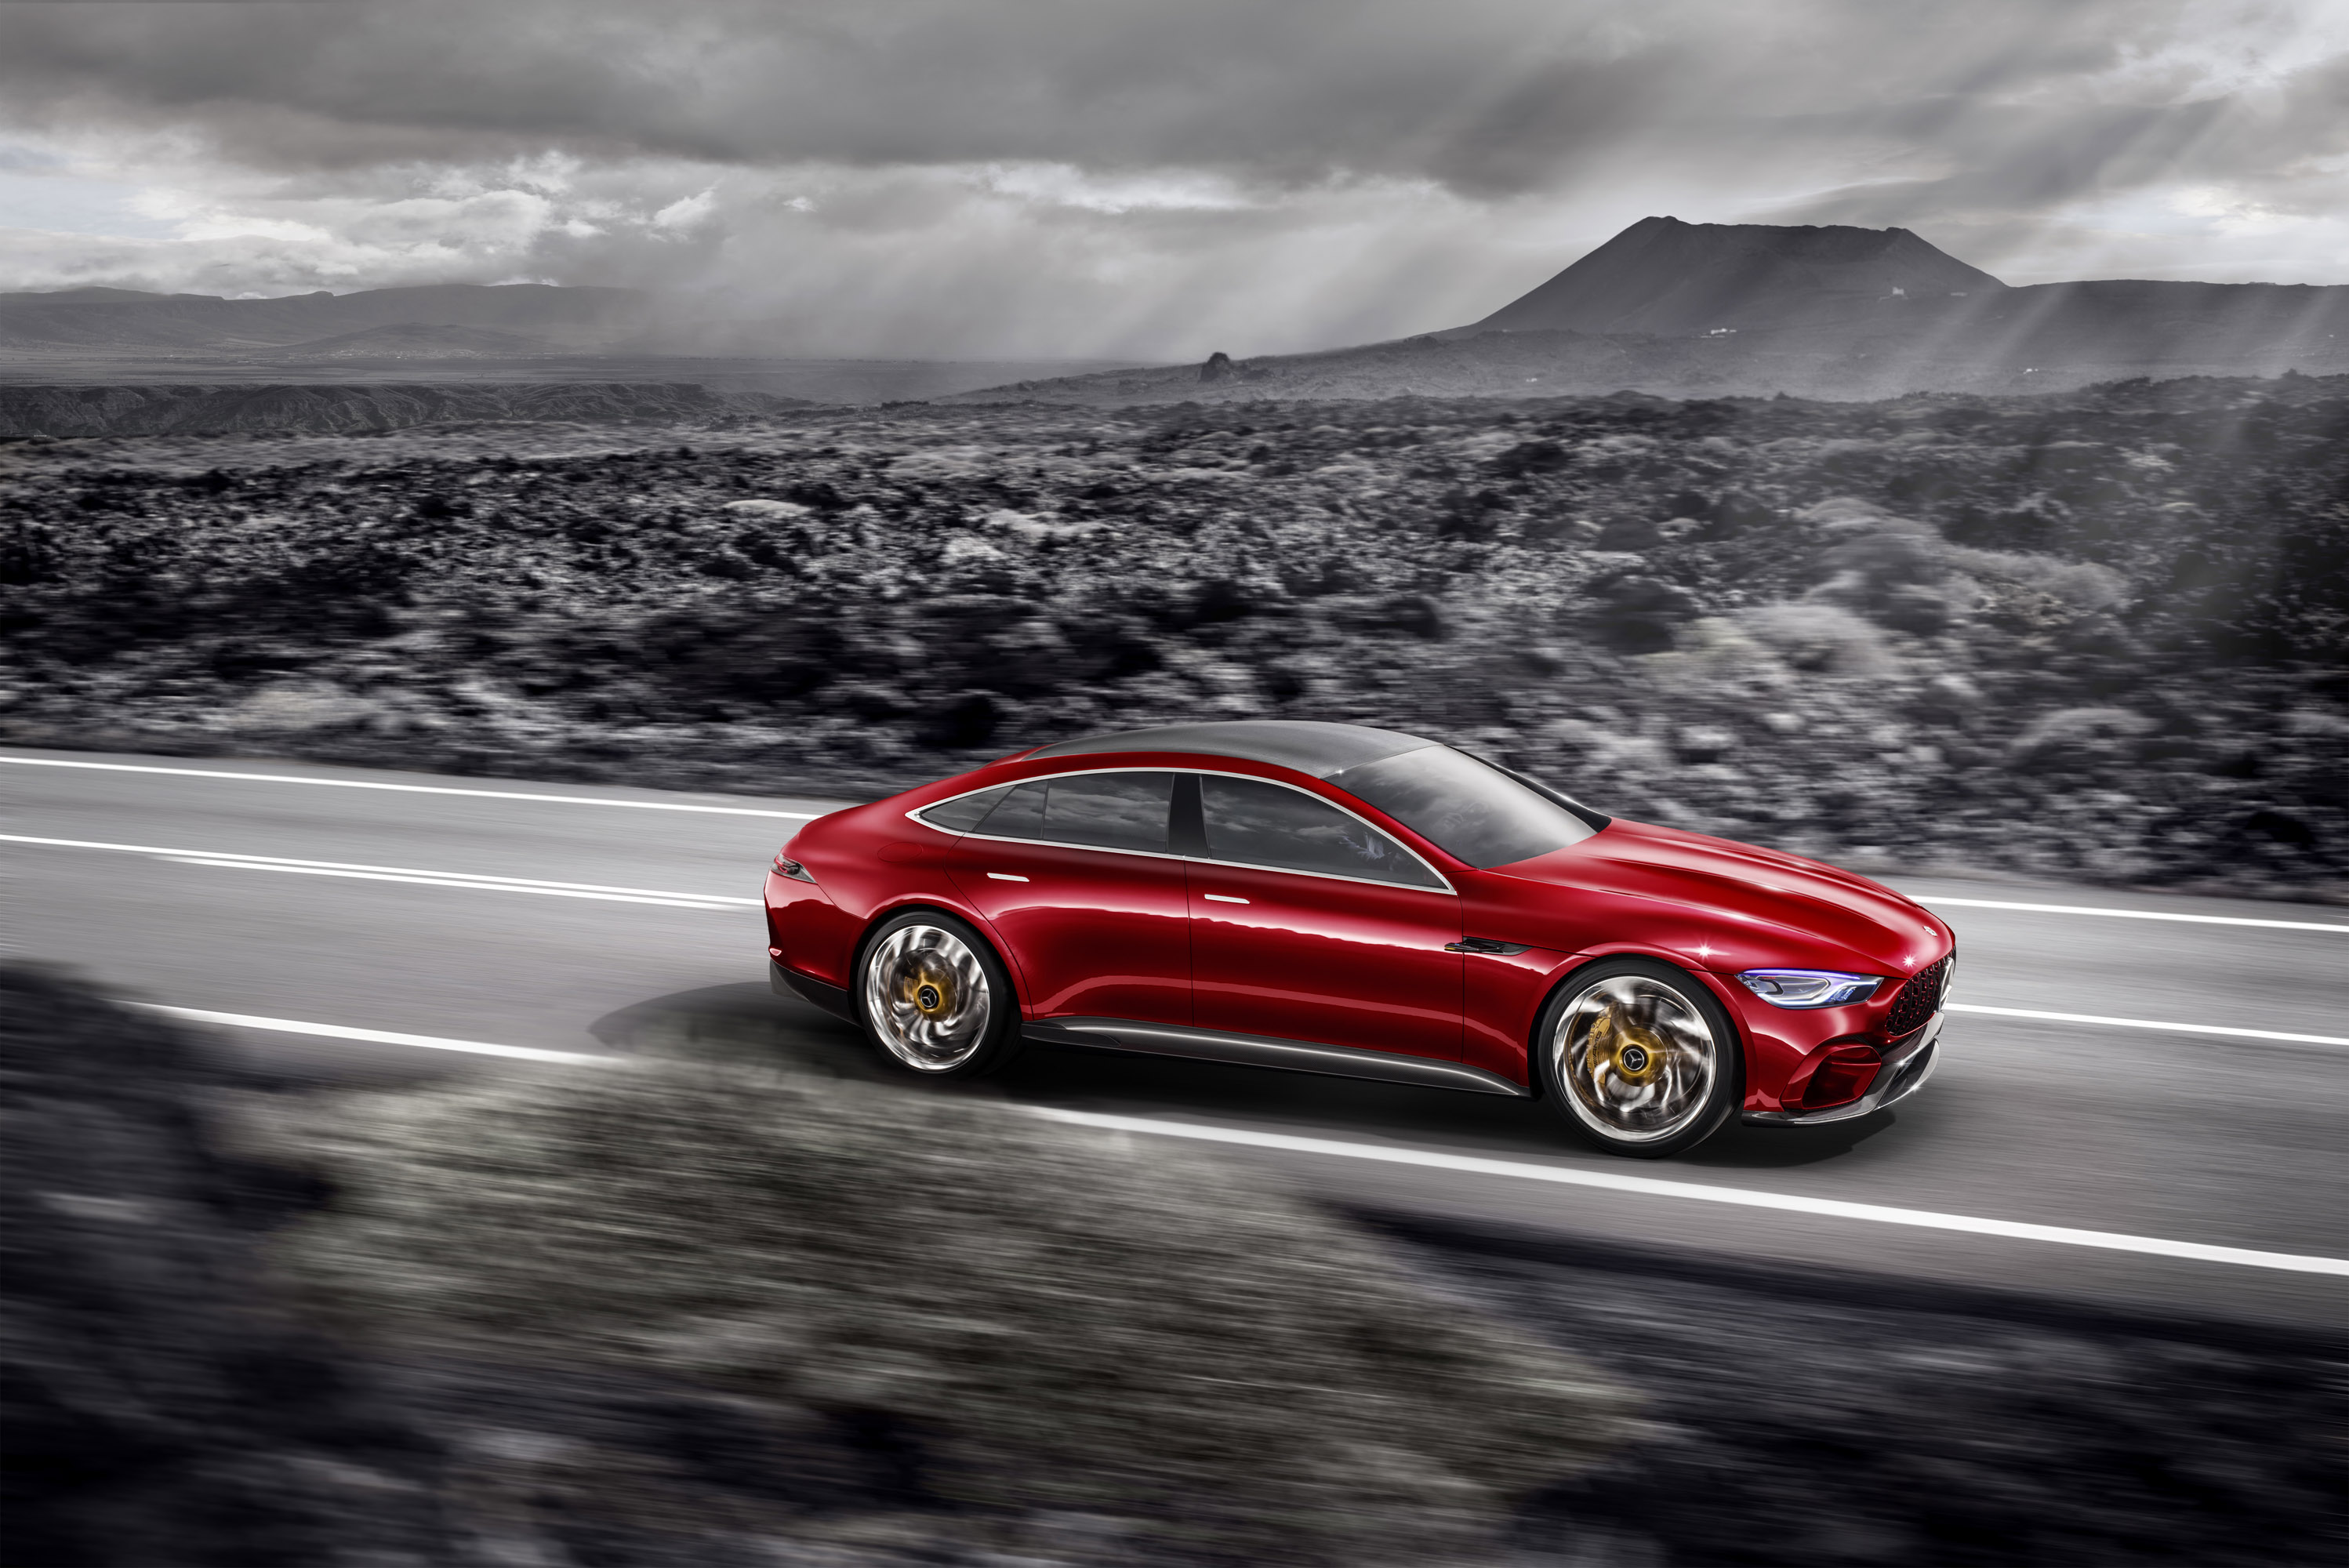 Mercedes AMG GT (C190) exterior restyling